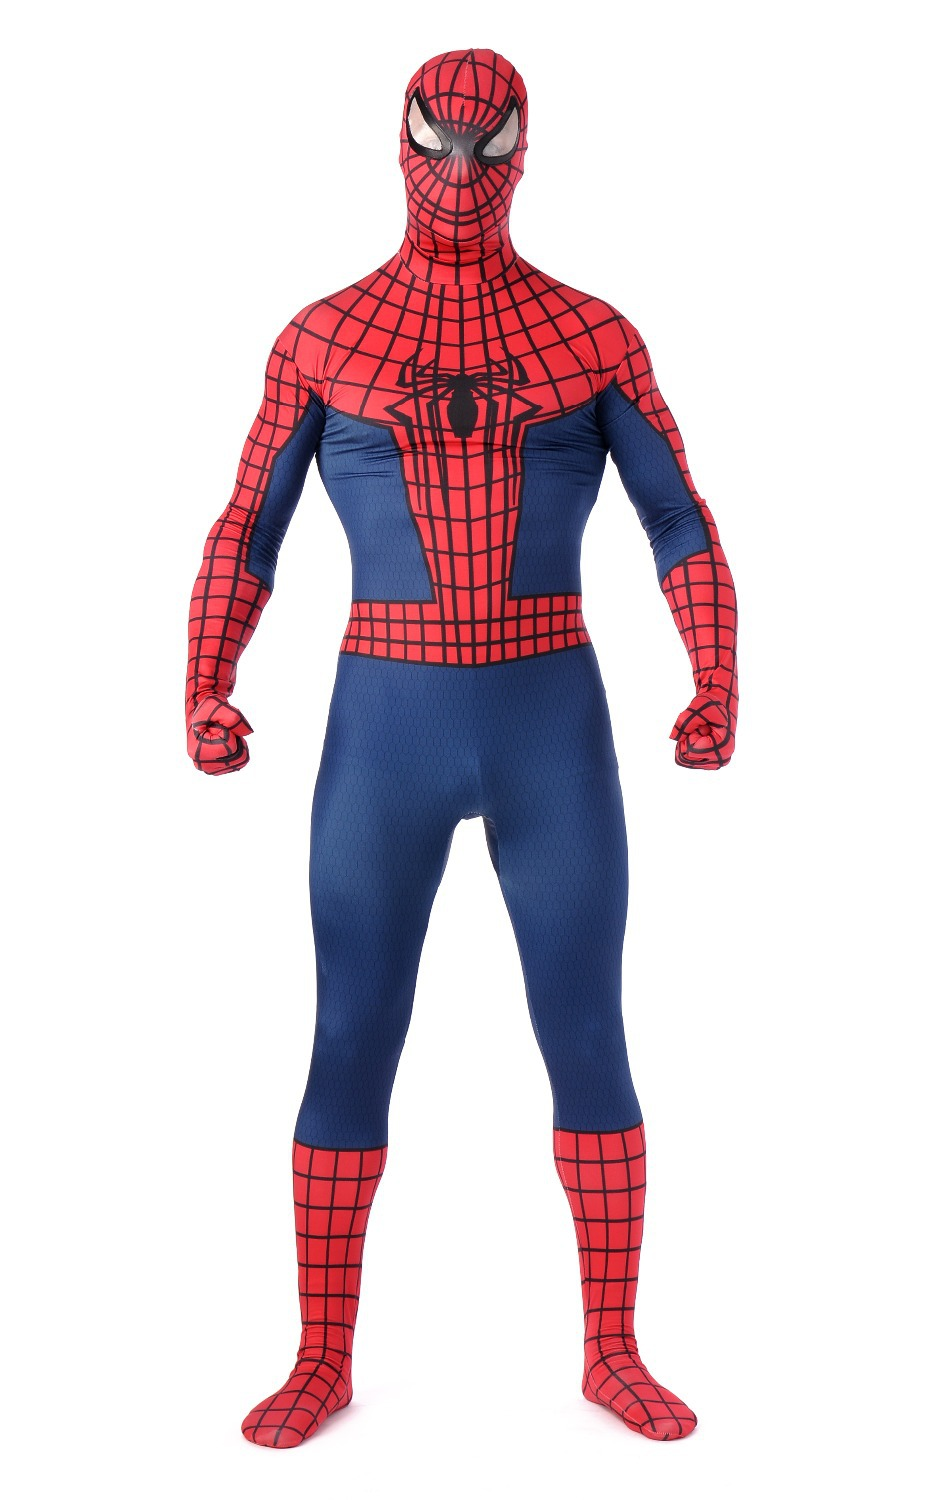 <font><b>Amazing</b></font> <font><b>Spiderman</b></font> Woman <font><b>Costume</b></font> <font><b>Adult</b></font> <font><b>Mens</b></font> Superhero Outfit Spandex Zentai Suits Lycra Full Mask Bodysuits For Halloween Cosplay